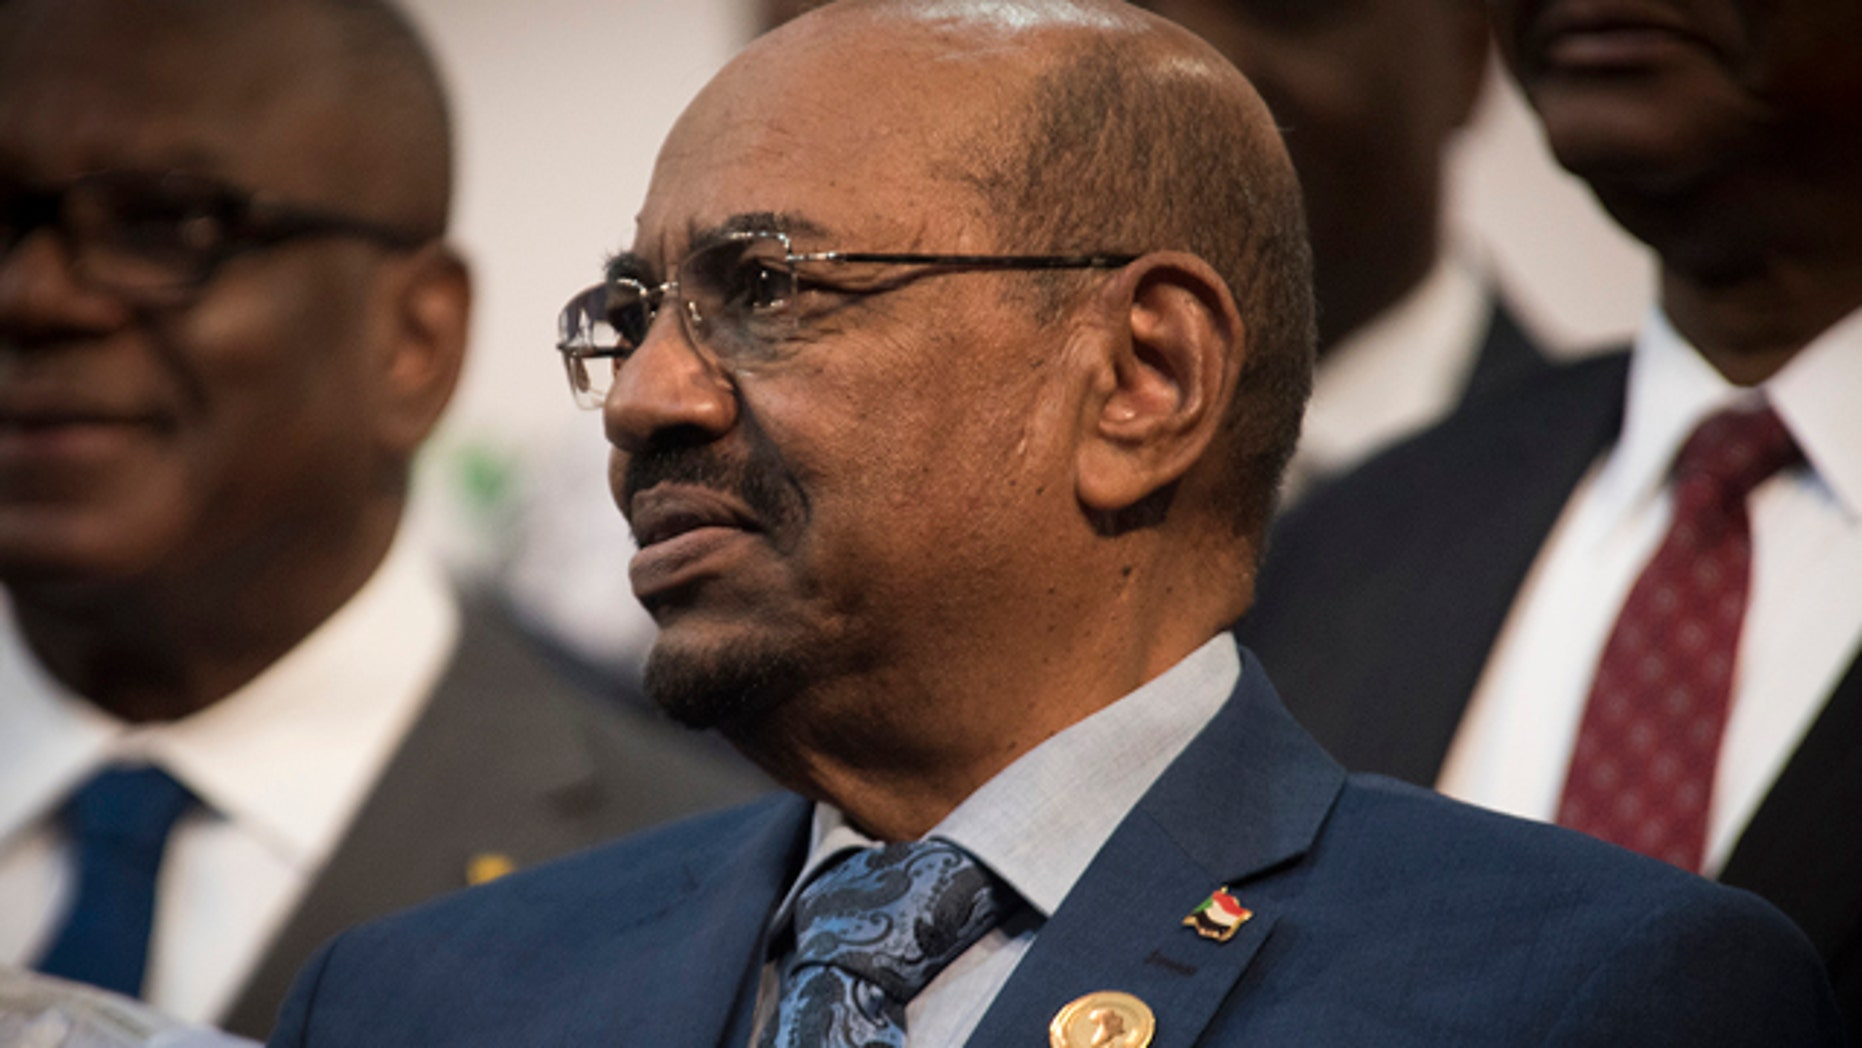 June 14, 2015: Sudanese president Omar al-Bashir is seen during a photo op at the African Union summit in Johannesburg. A South African judge on Sunday ordered authorities to prevent al-Bashir from leaving the country because of an international order for his arrest, human rights activists said.(AP Photo/Shiraaz Mohamed)